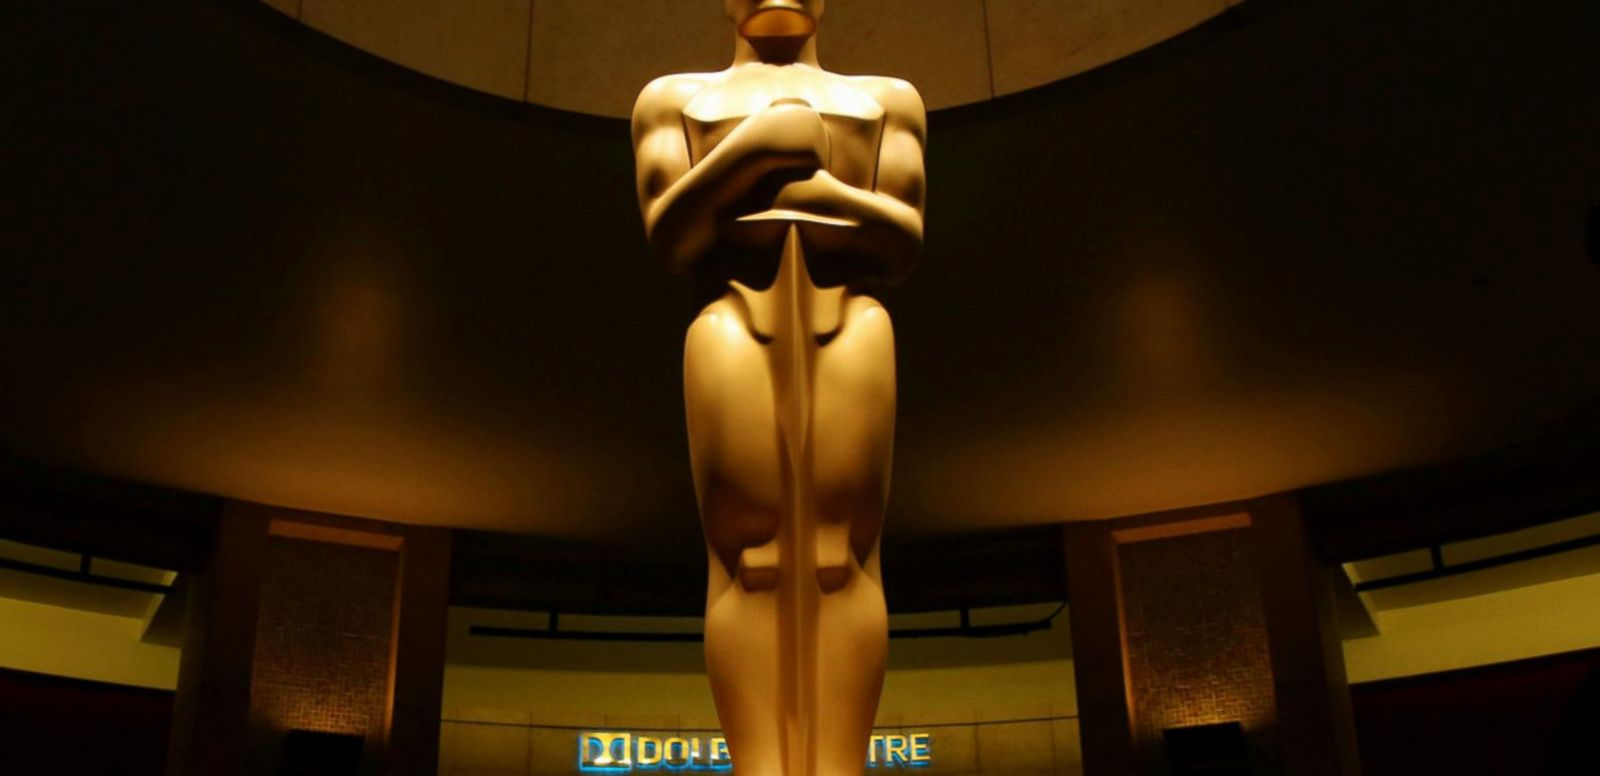 VIDEO: Oscars: Academy Announces New Class of Diverse Members